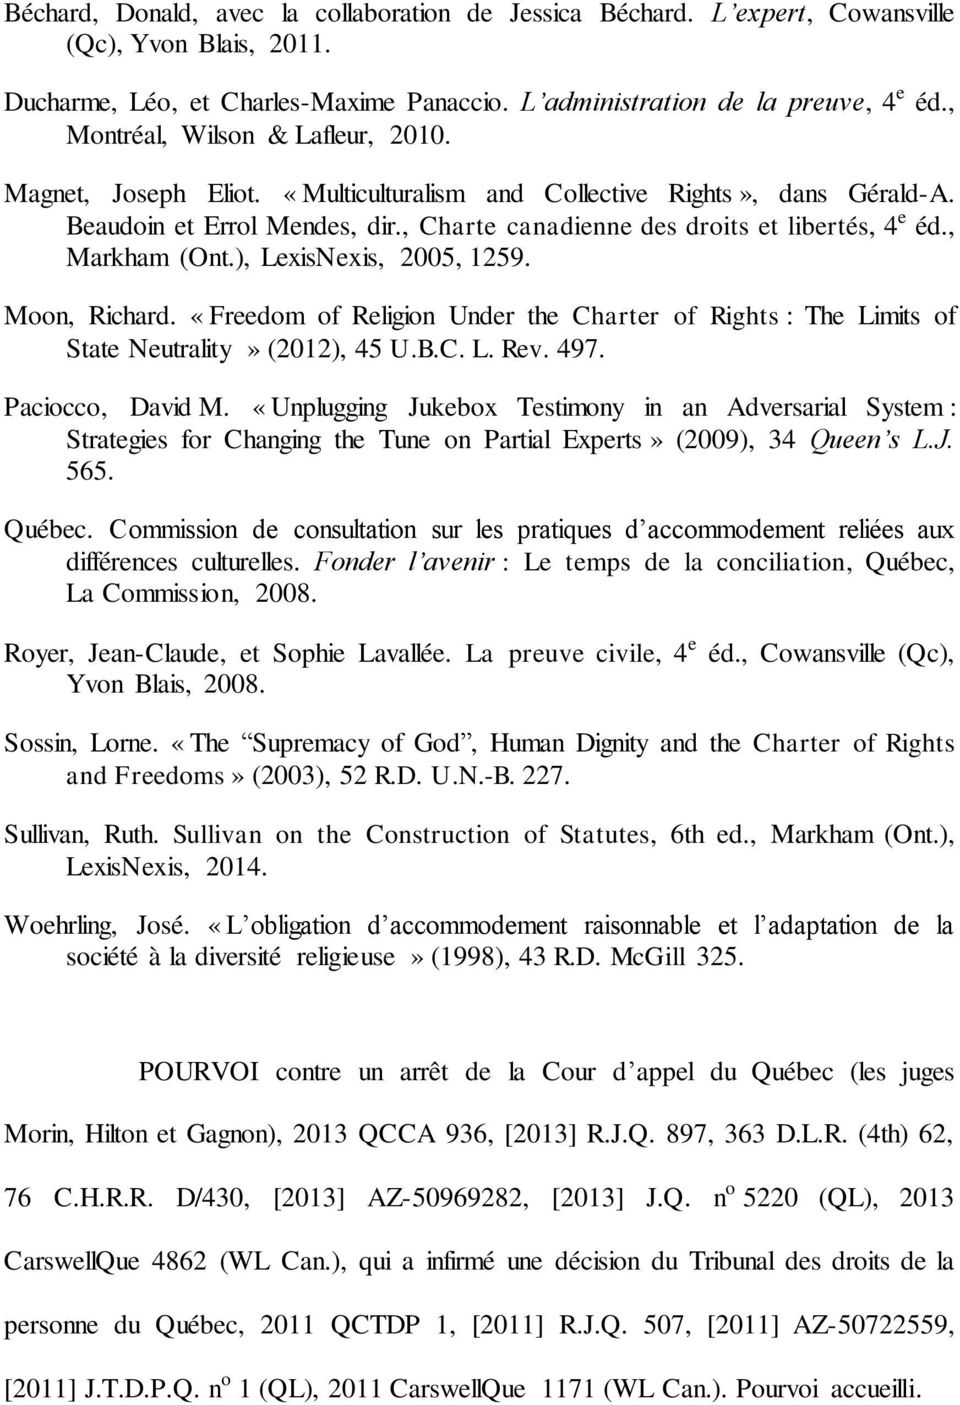 , Markham (Ont.), LexisNexis, 2005, 1259. Moon, Richard. «Freedom of Religion Under the Charter of Rights : The Limits of State Neutrality» (2012), 45 U.B.C. L. Rev. 497. Paciocco, David M.